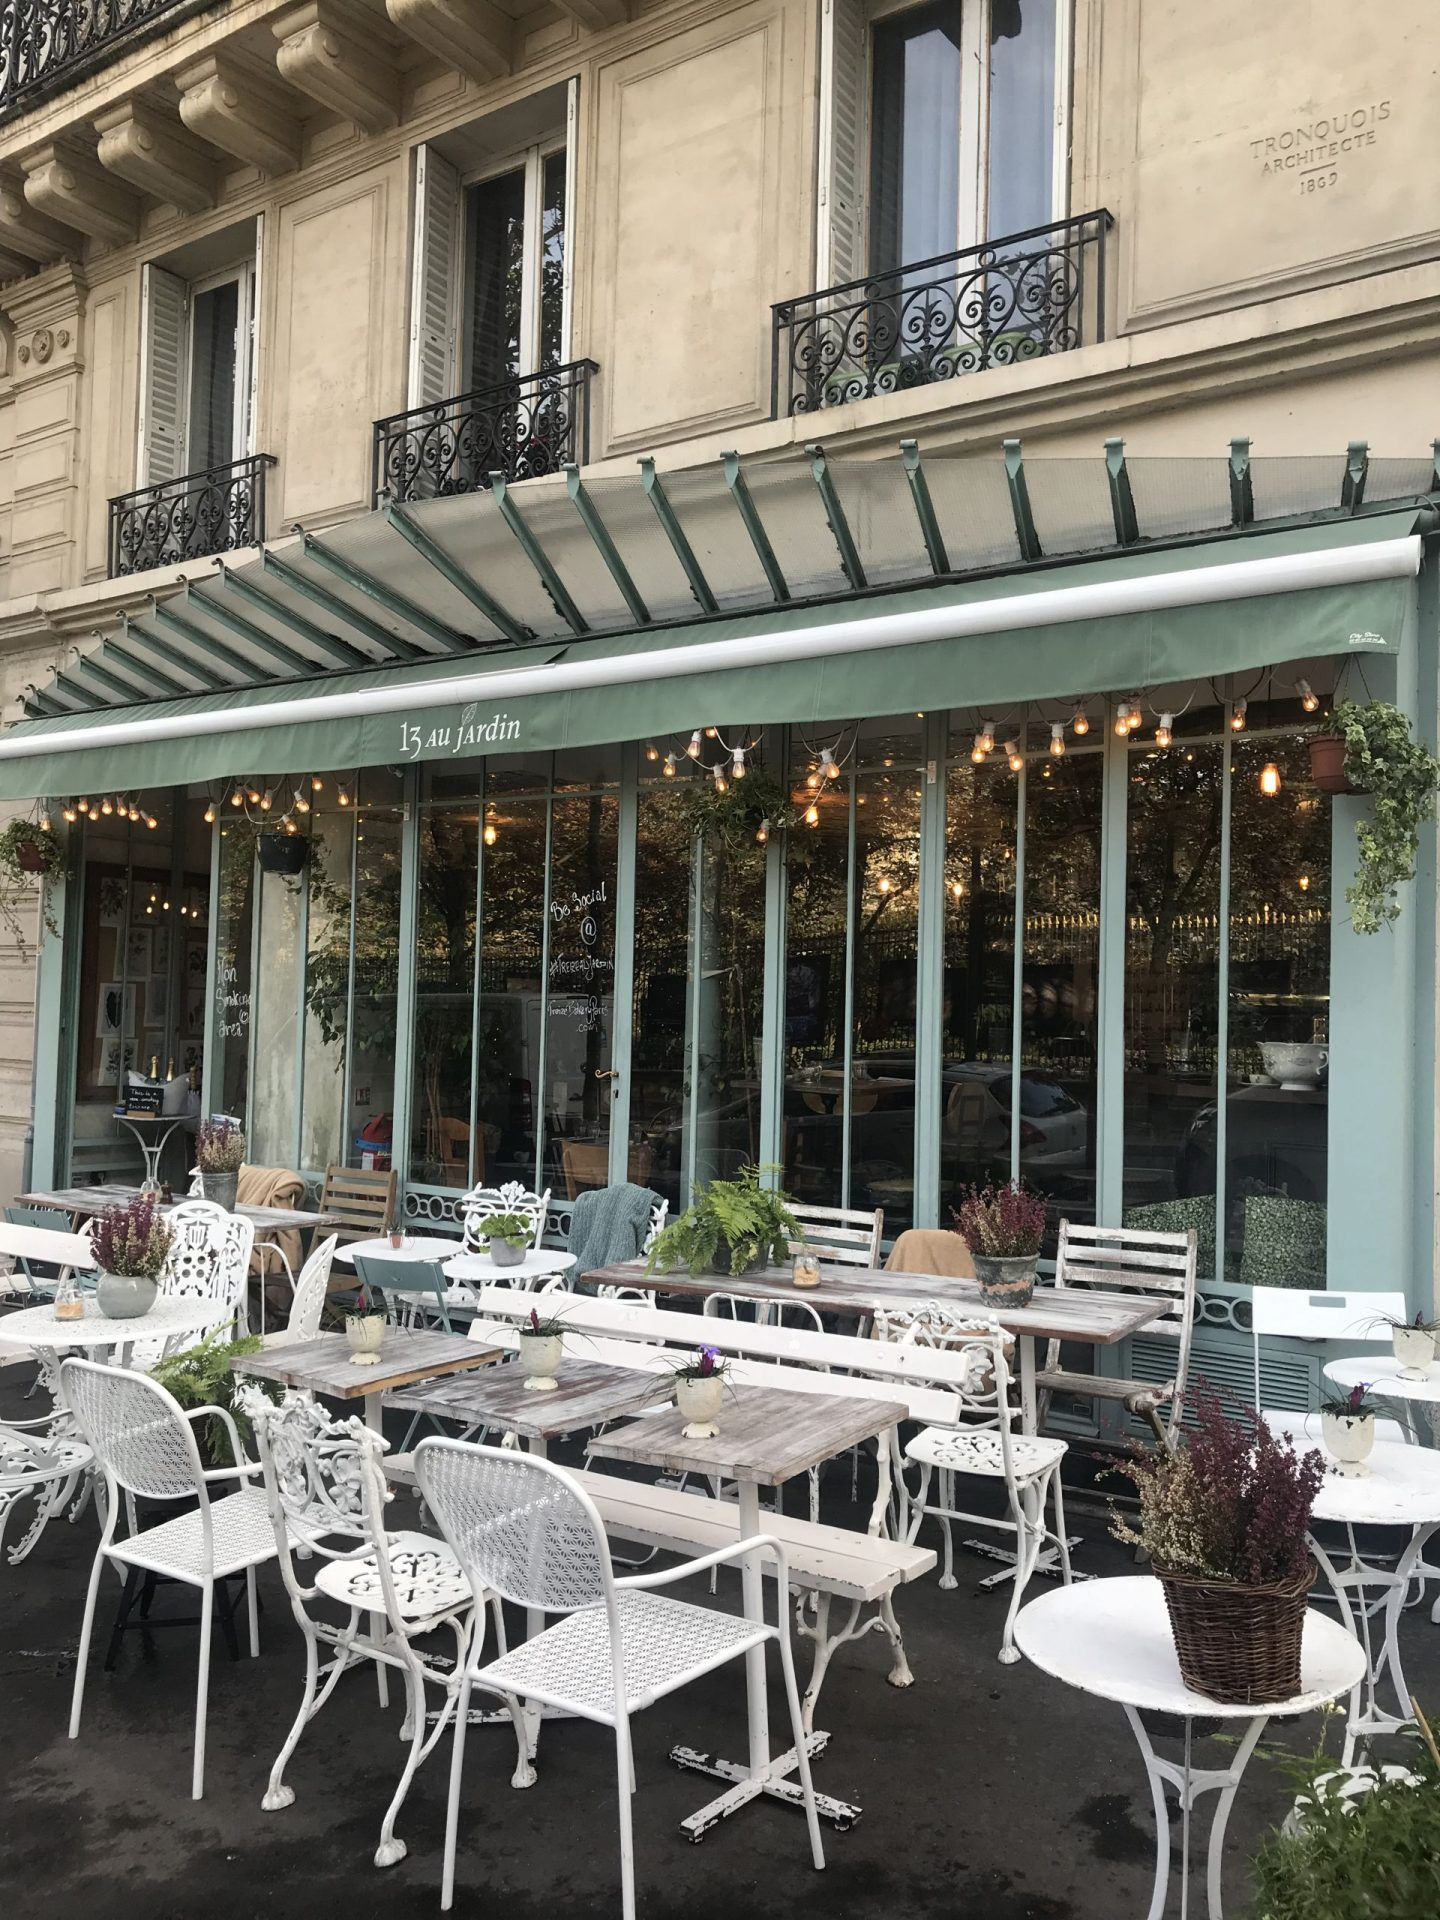 Solo coffee at Treize au Jardin, Paris – terrace with a view!